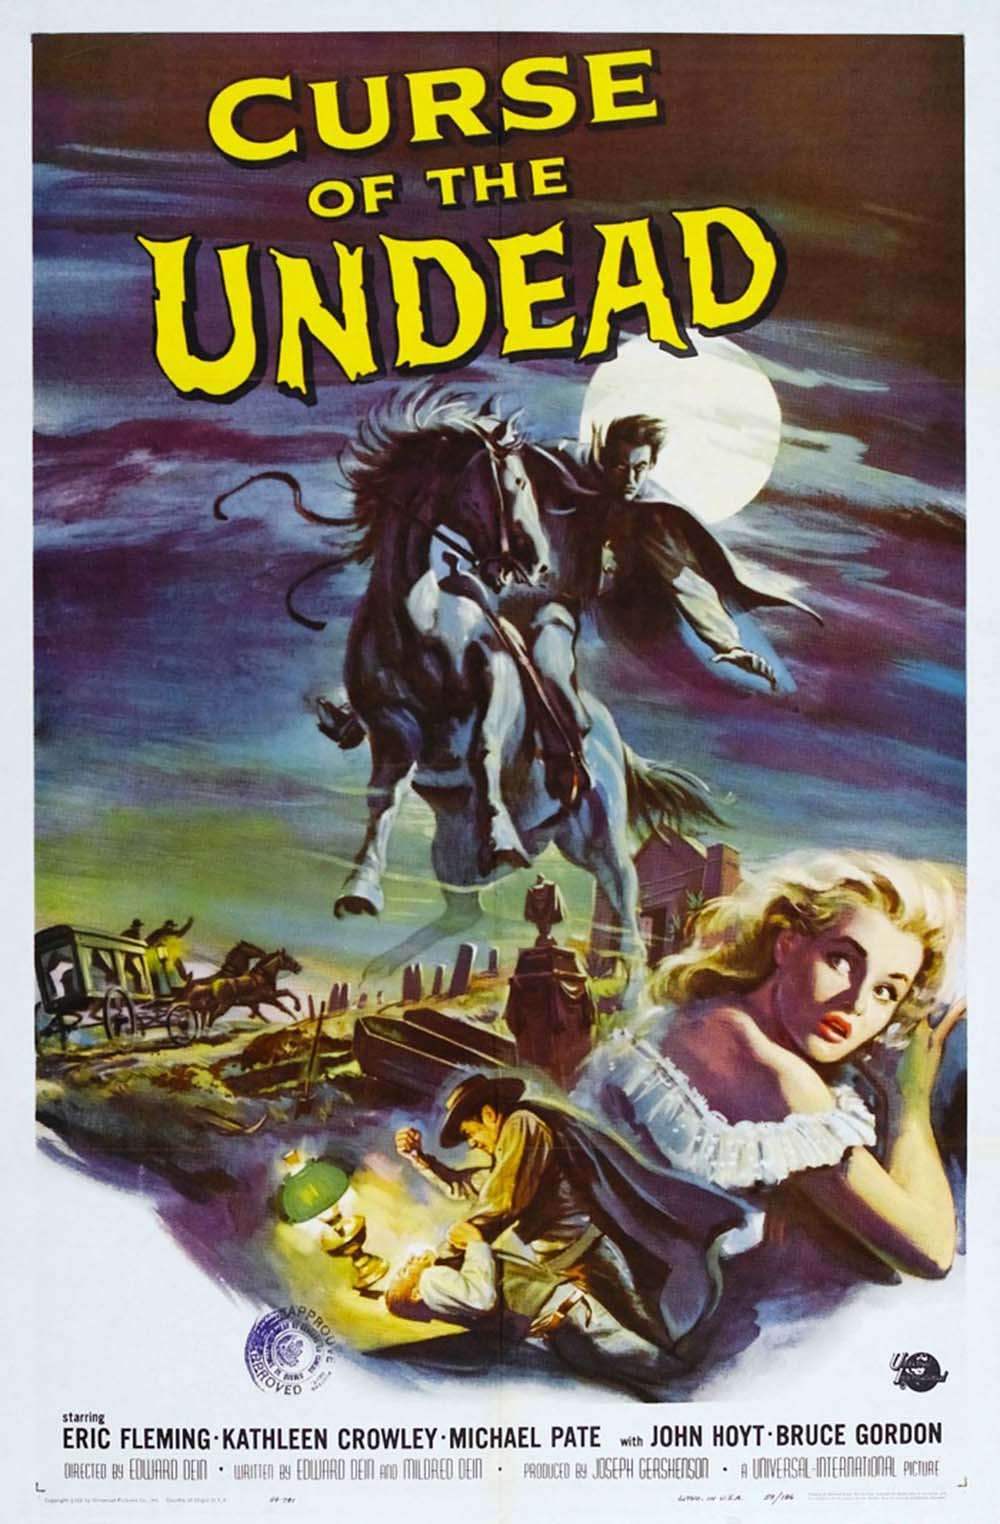 The Curse of the Undead - 1959